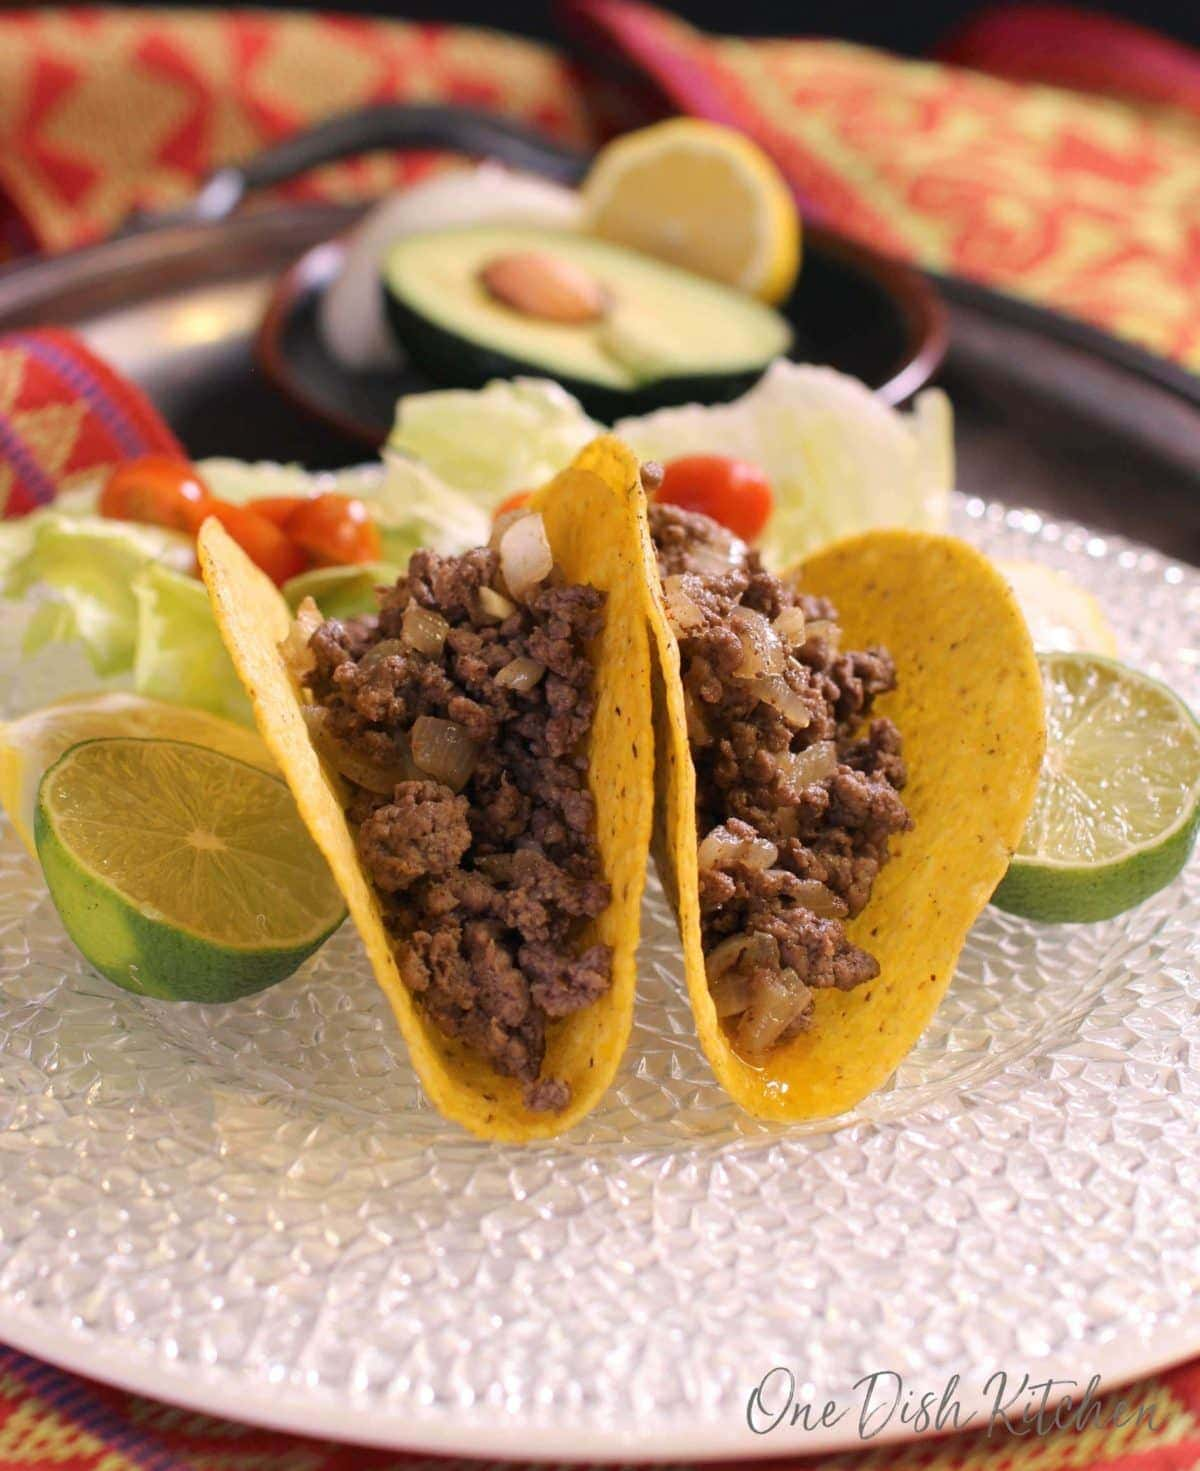 Two taco shells on a plate filled with ground beef and onions. The tacos are being held up by limes.